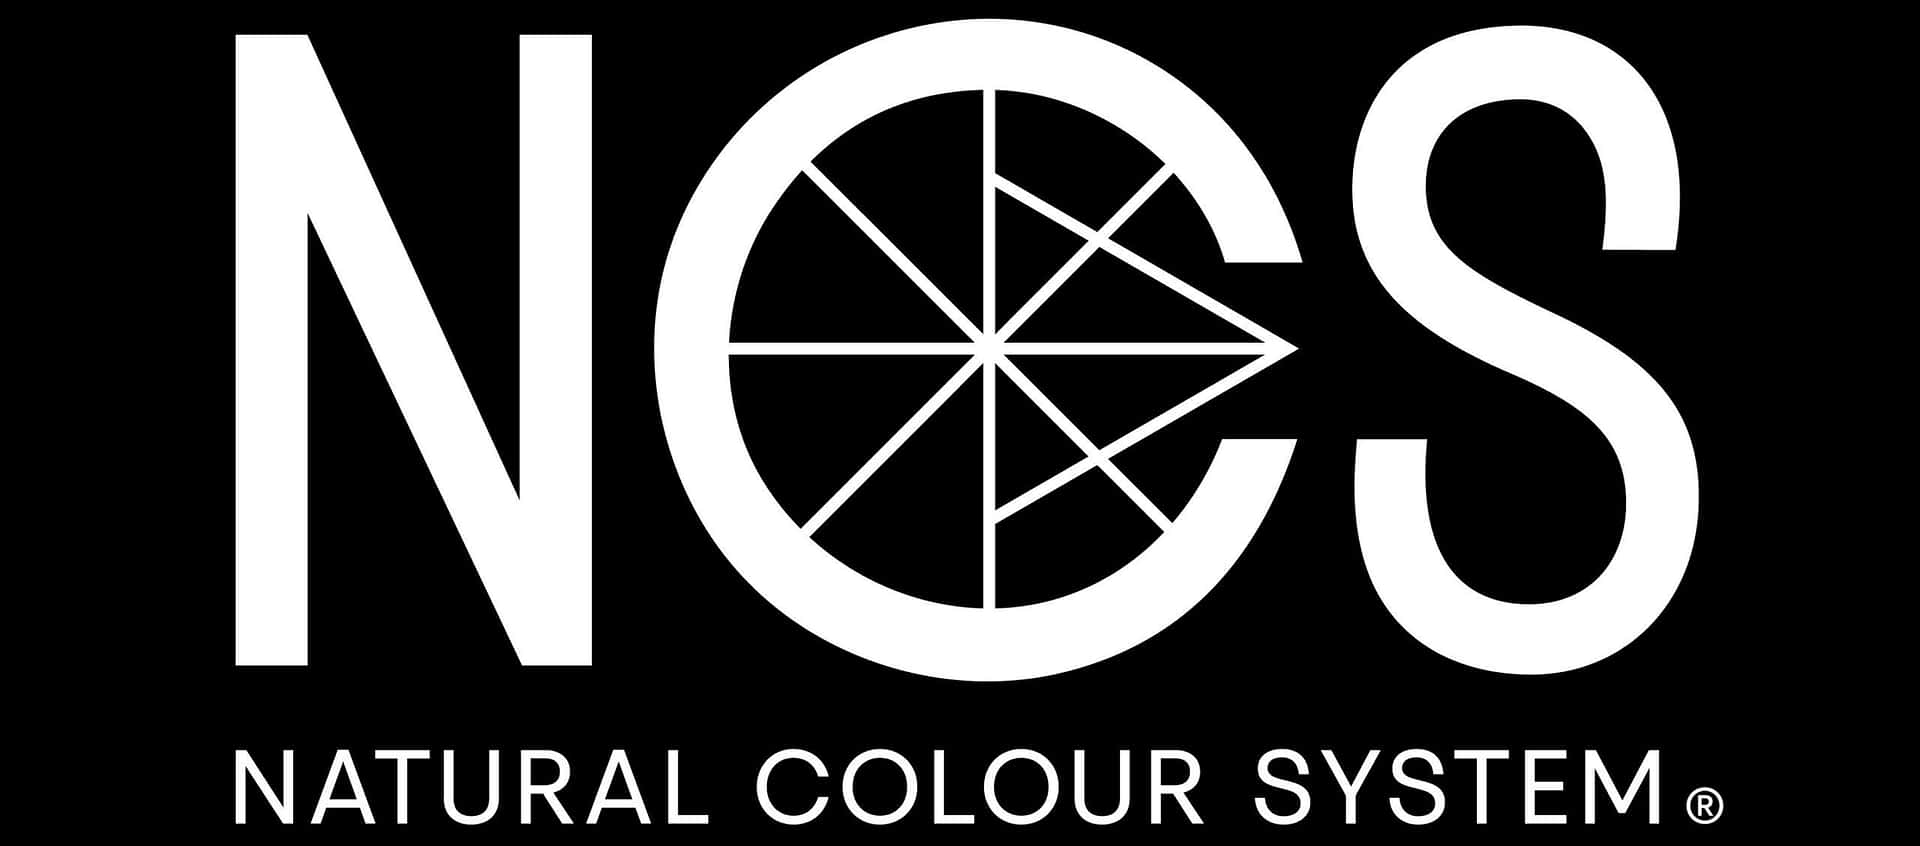 NCS - Natural Colour System